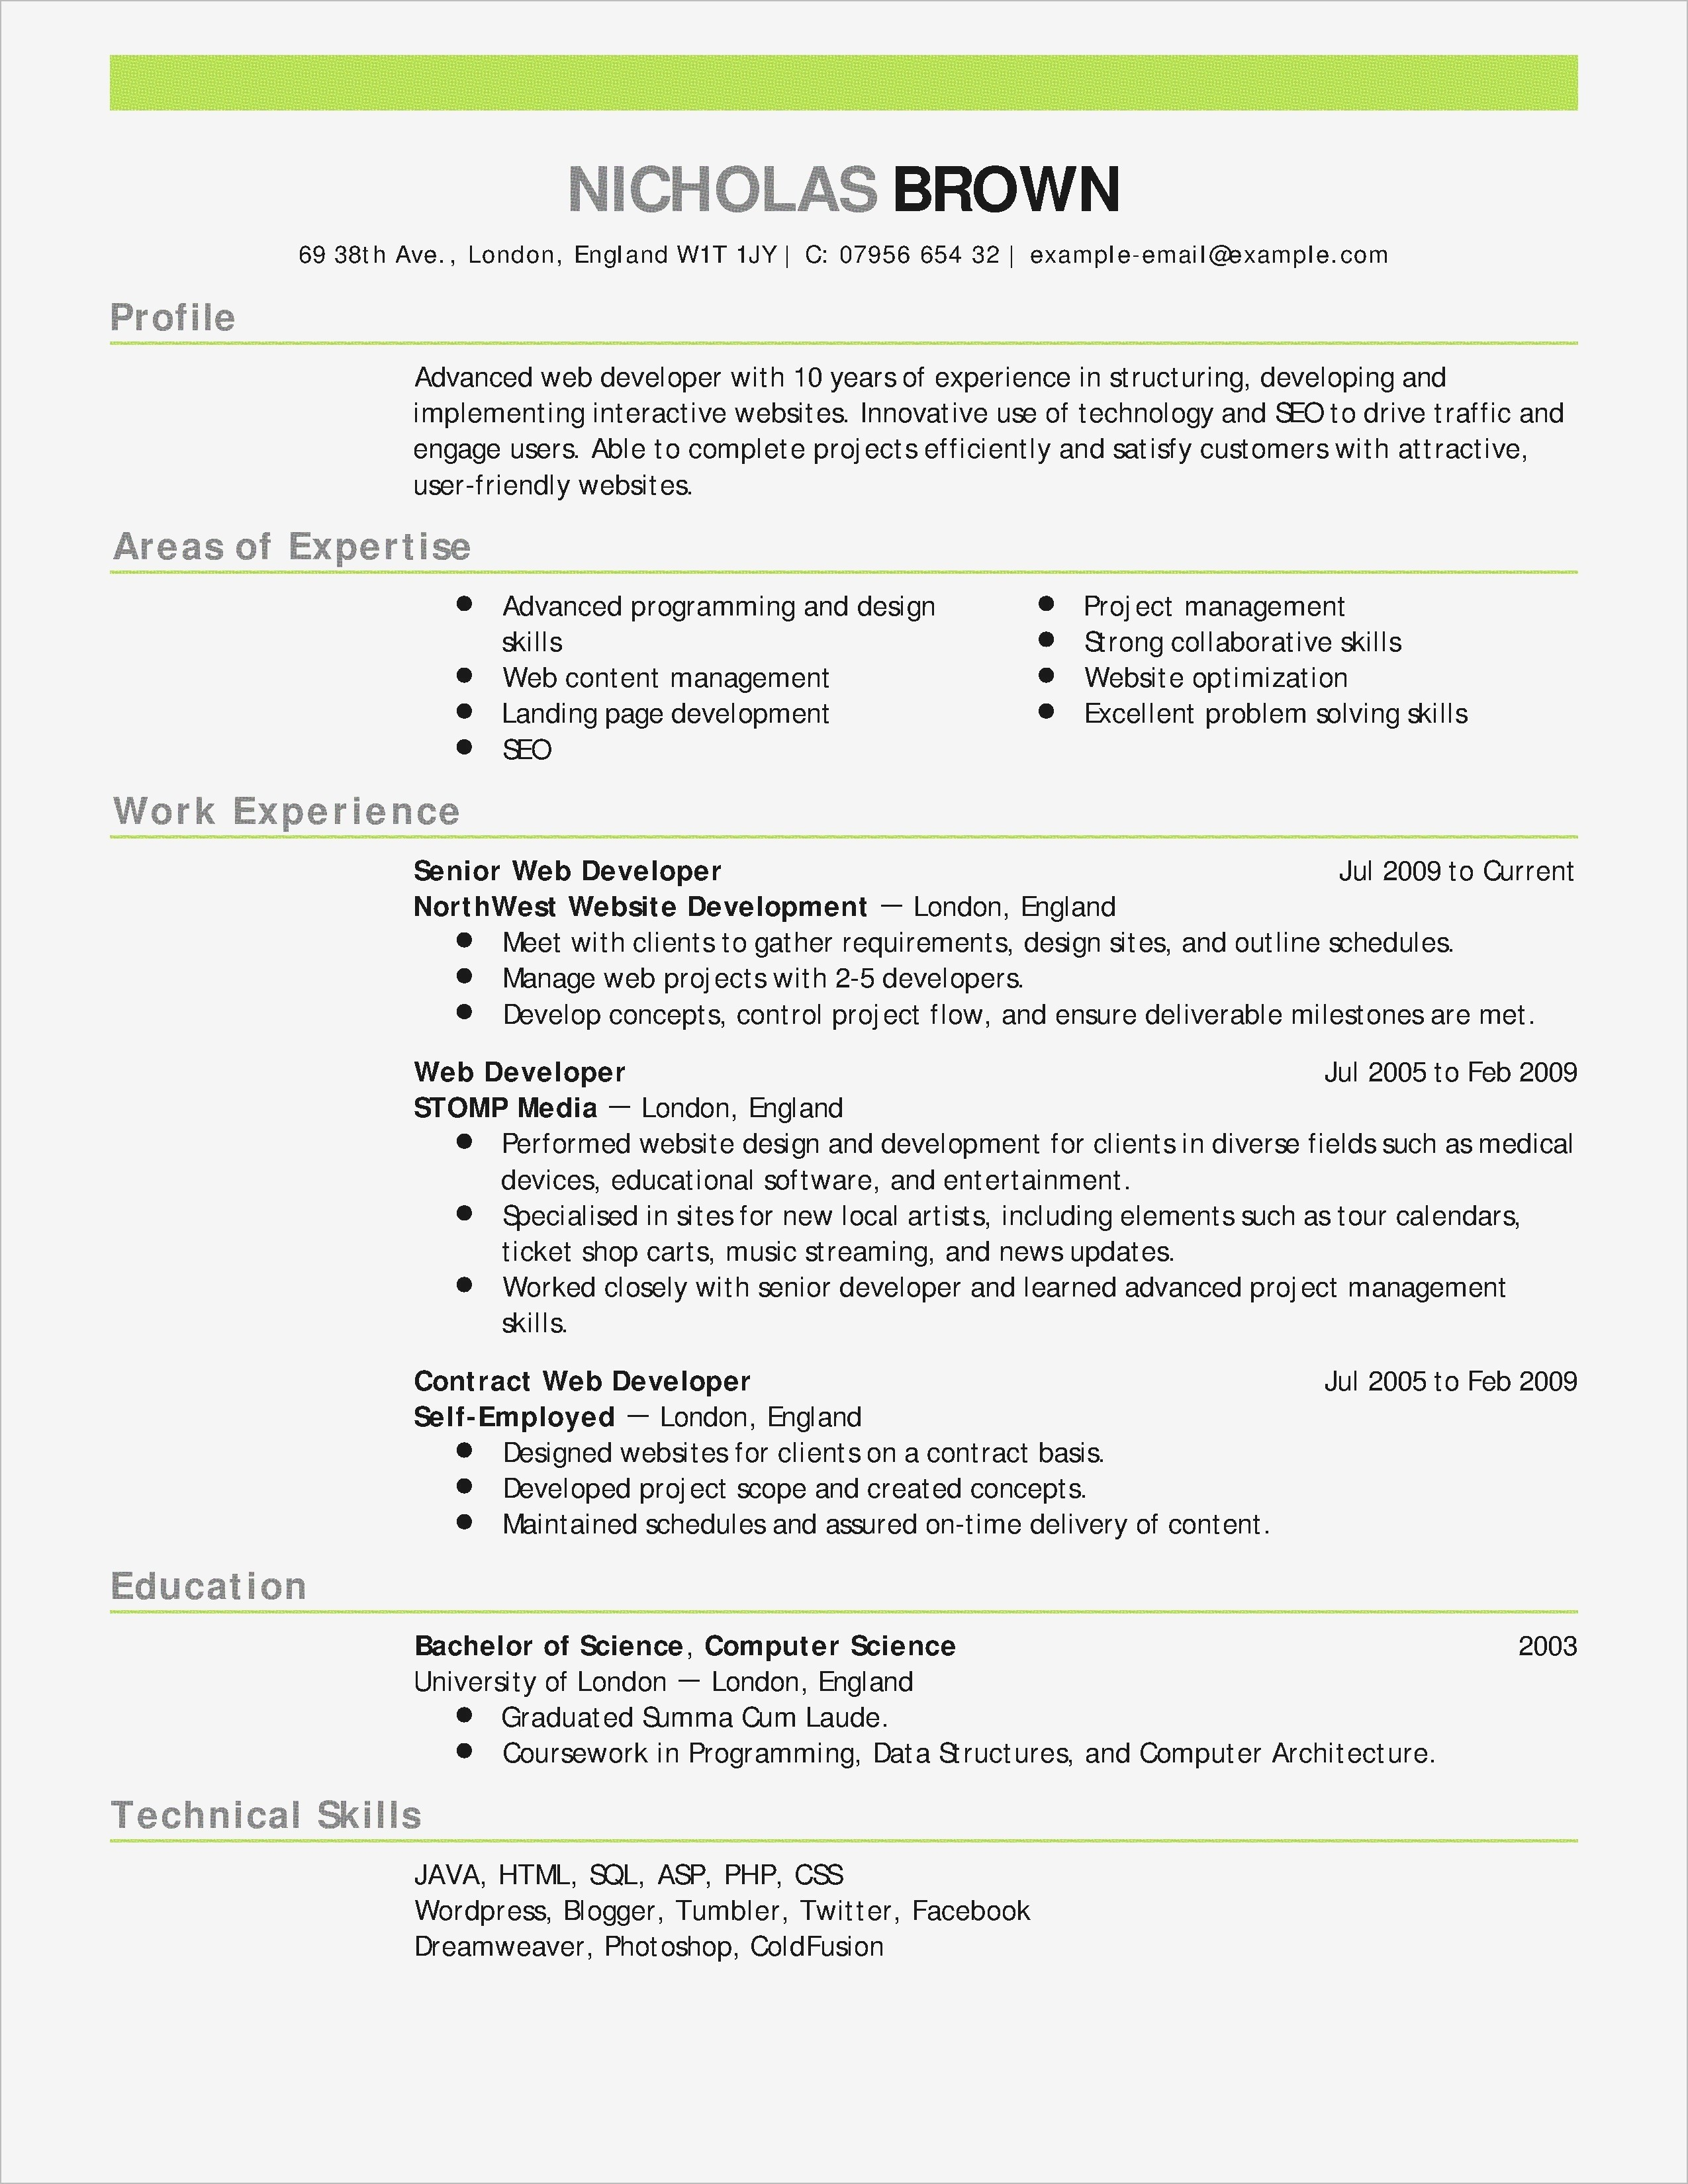 Self employment letter template collection letter templates self employment letter template beautiful experience letter sample altavistaventures Choice Image